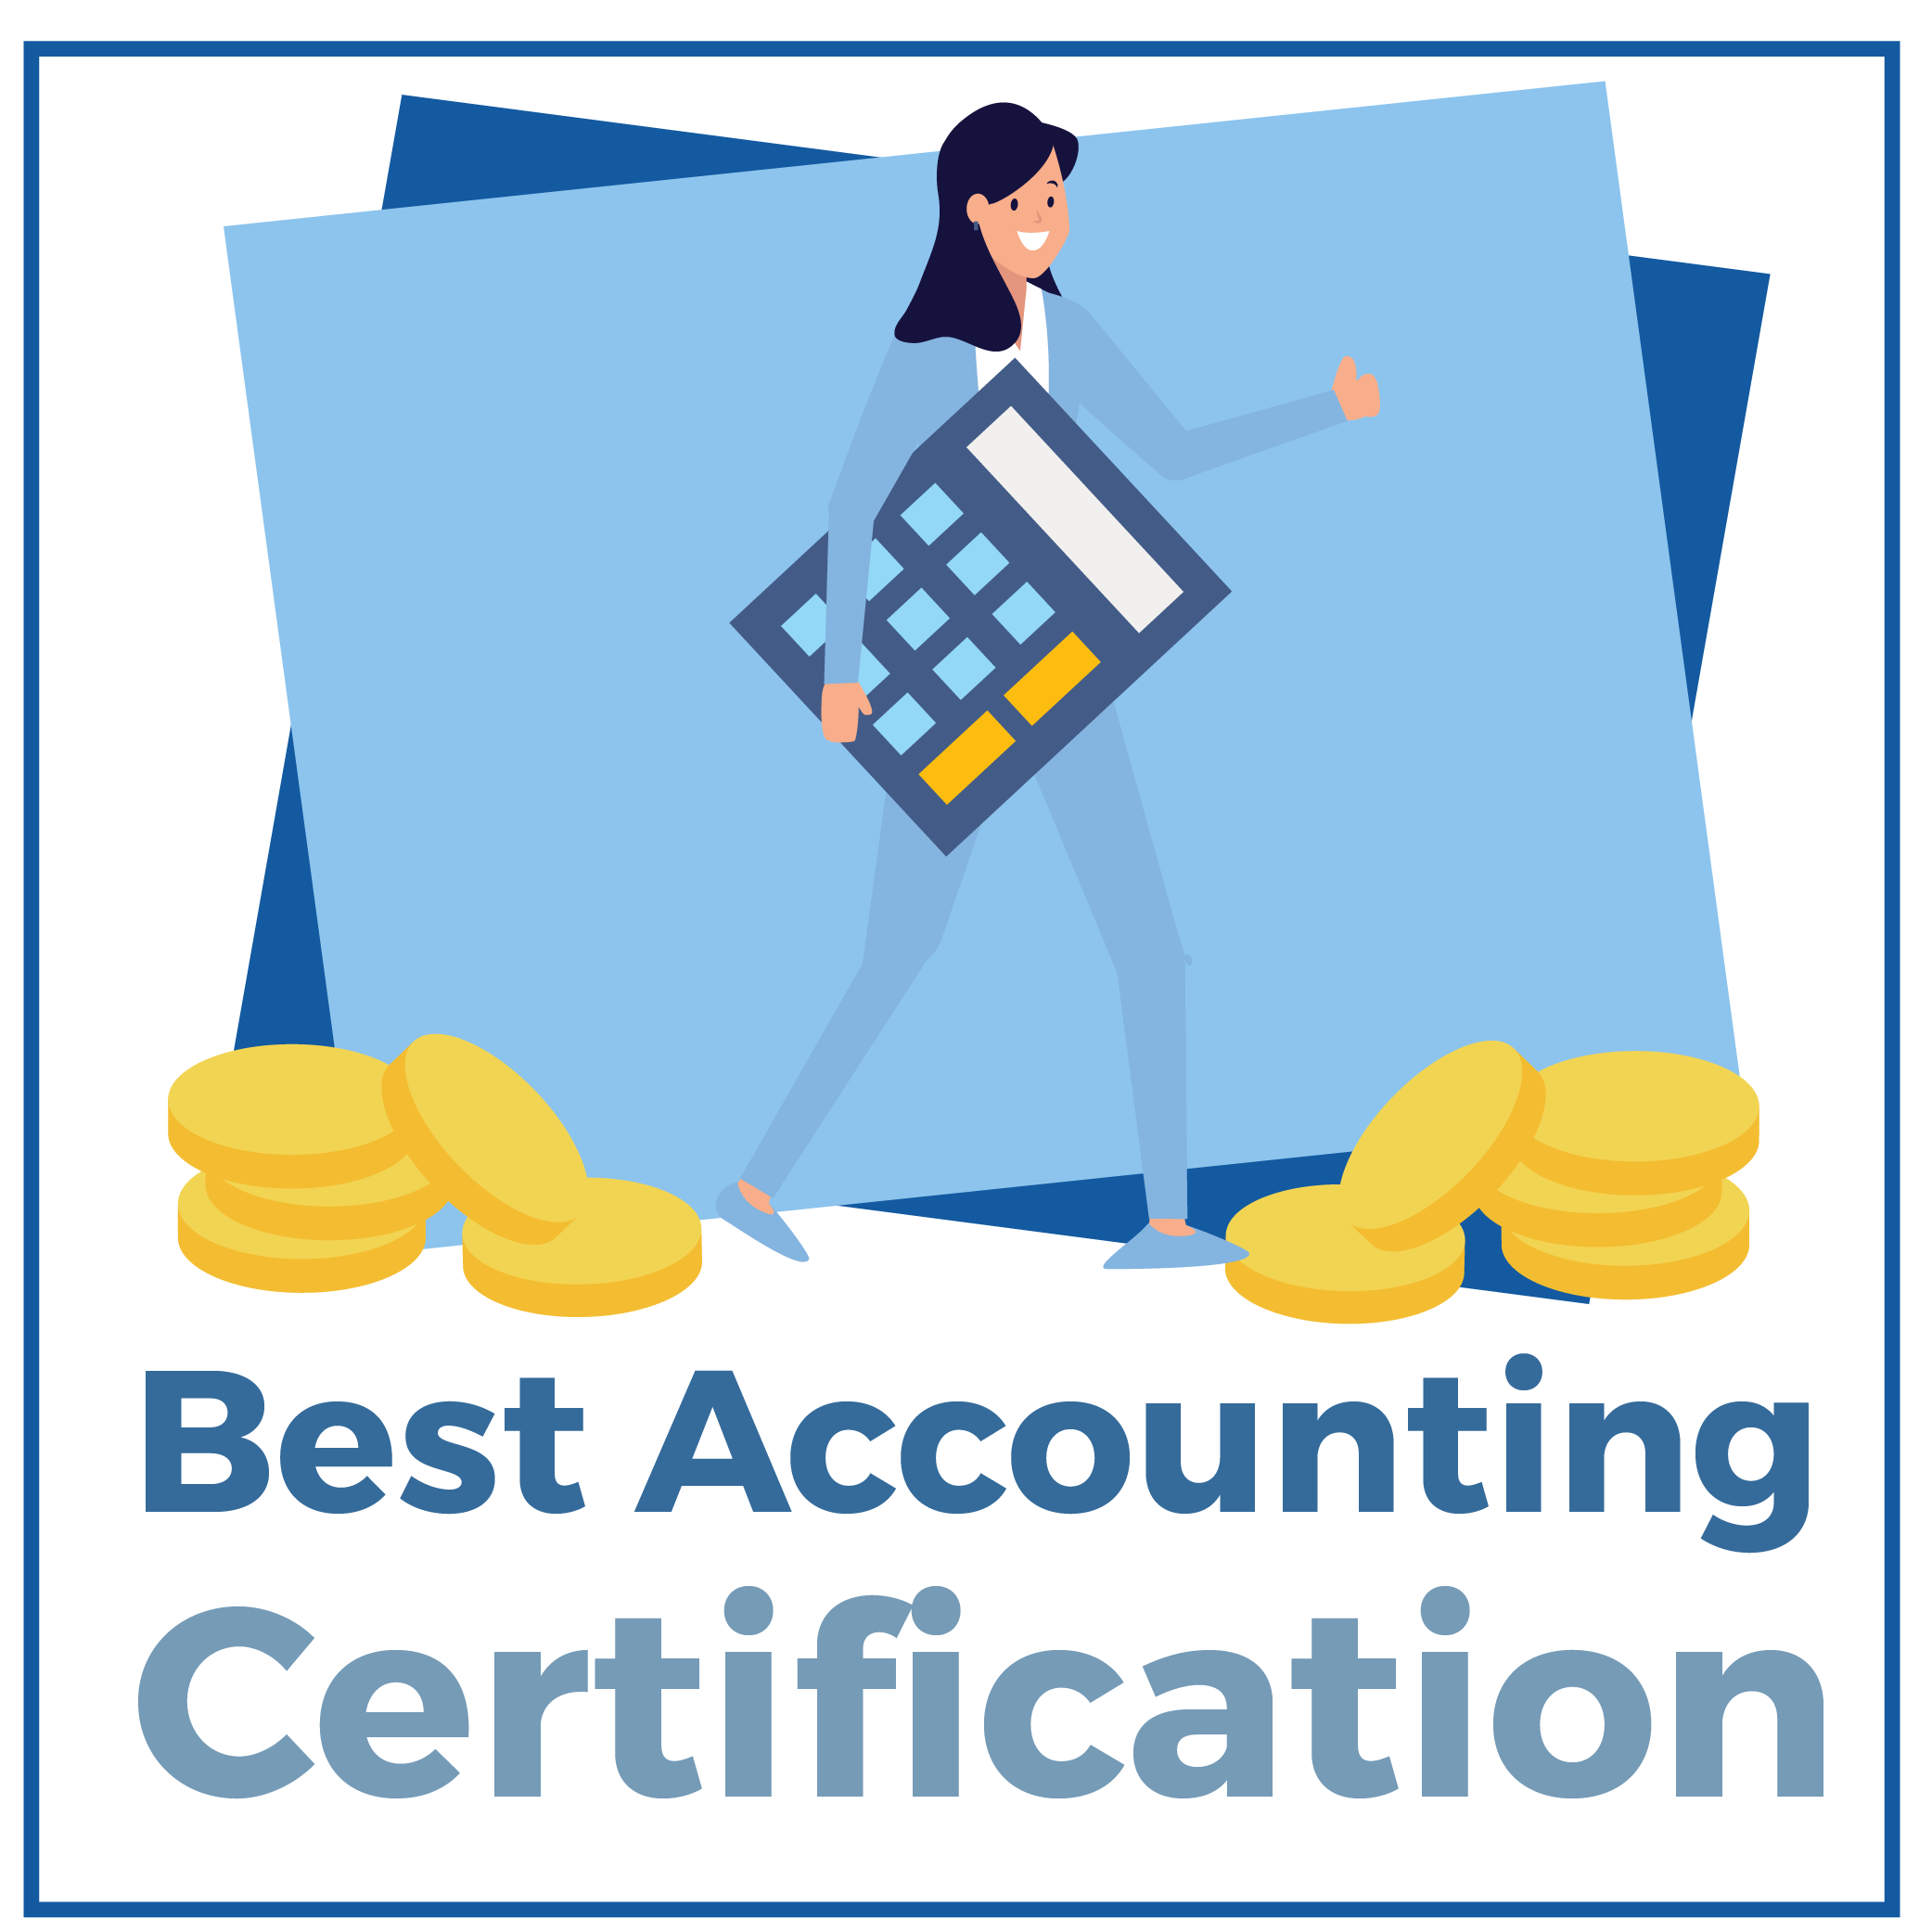 Best Accounting Certification